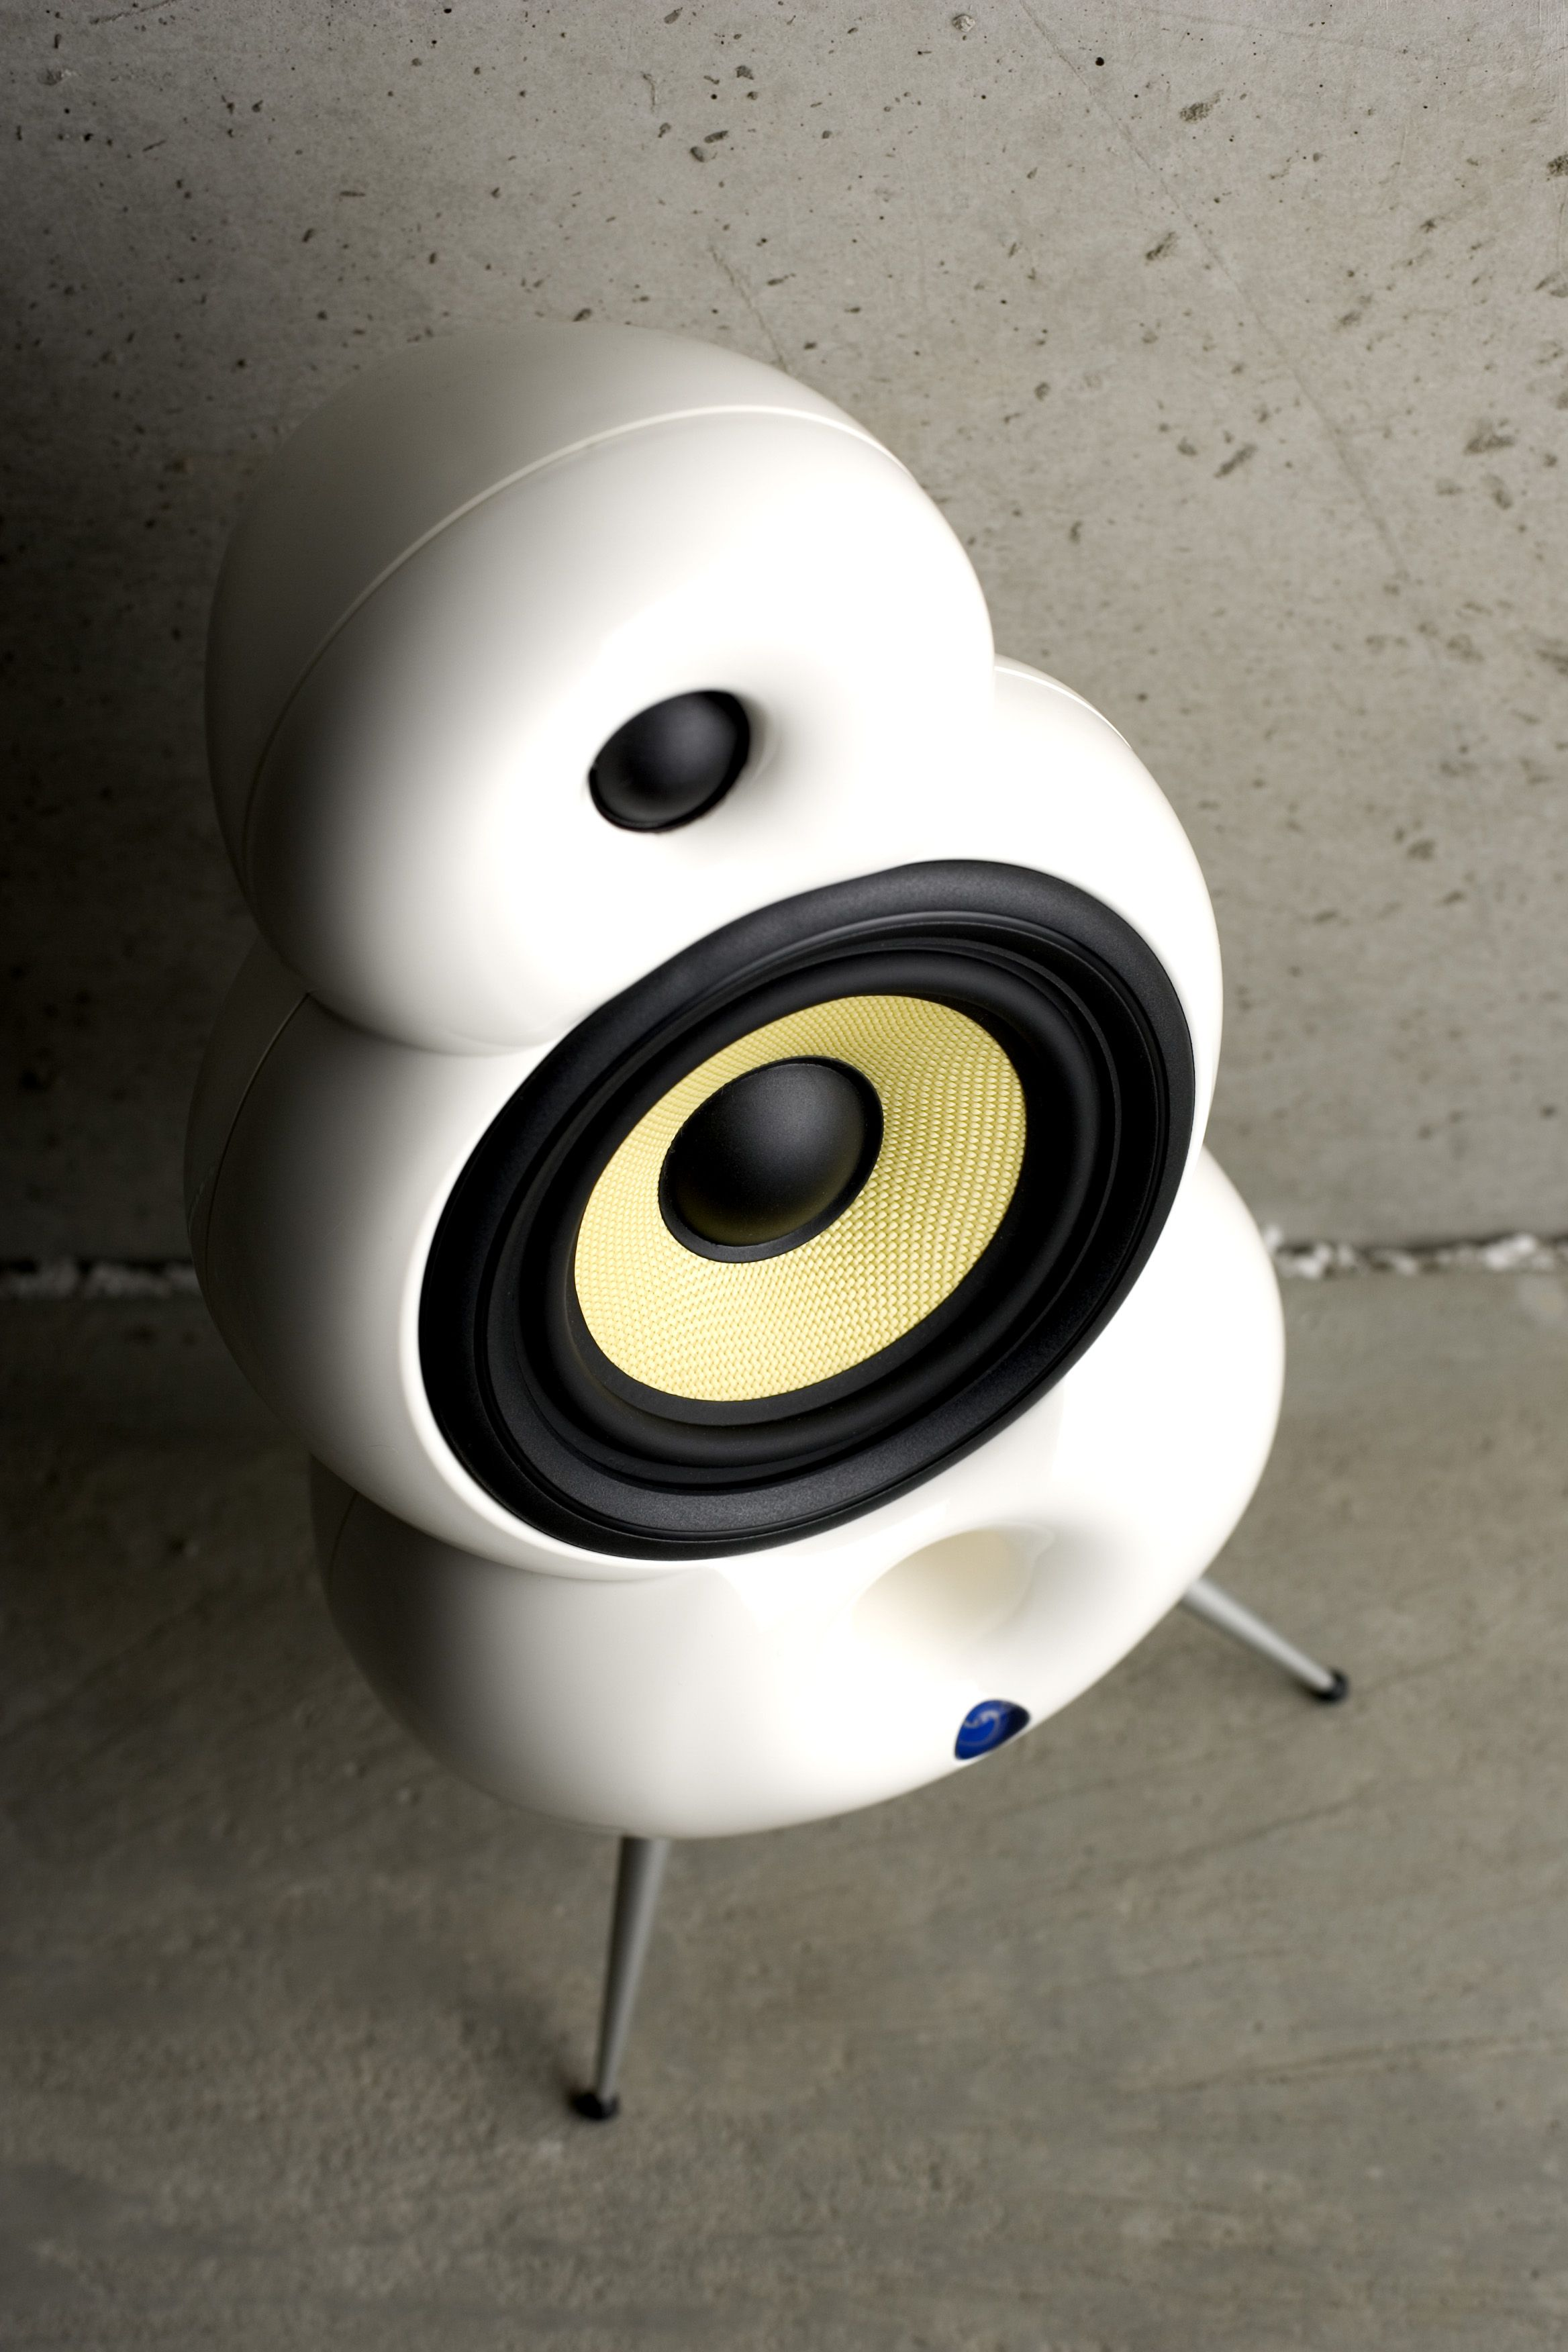 Iconic Hifi Speakers From Scandyna Hifi Cool Toys Hifi Speakers [ 3504 x 2336 Pixel ]